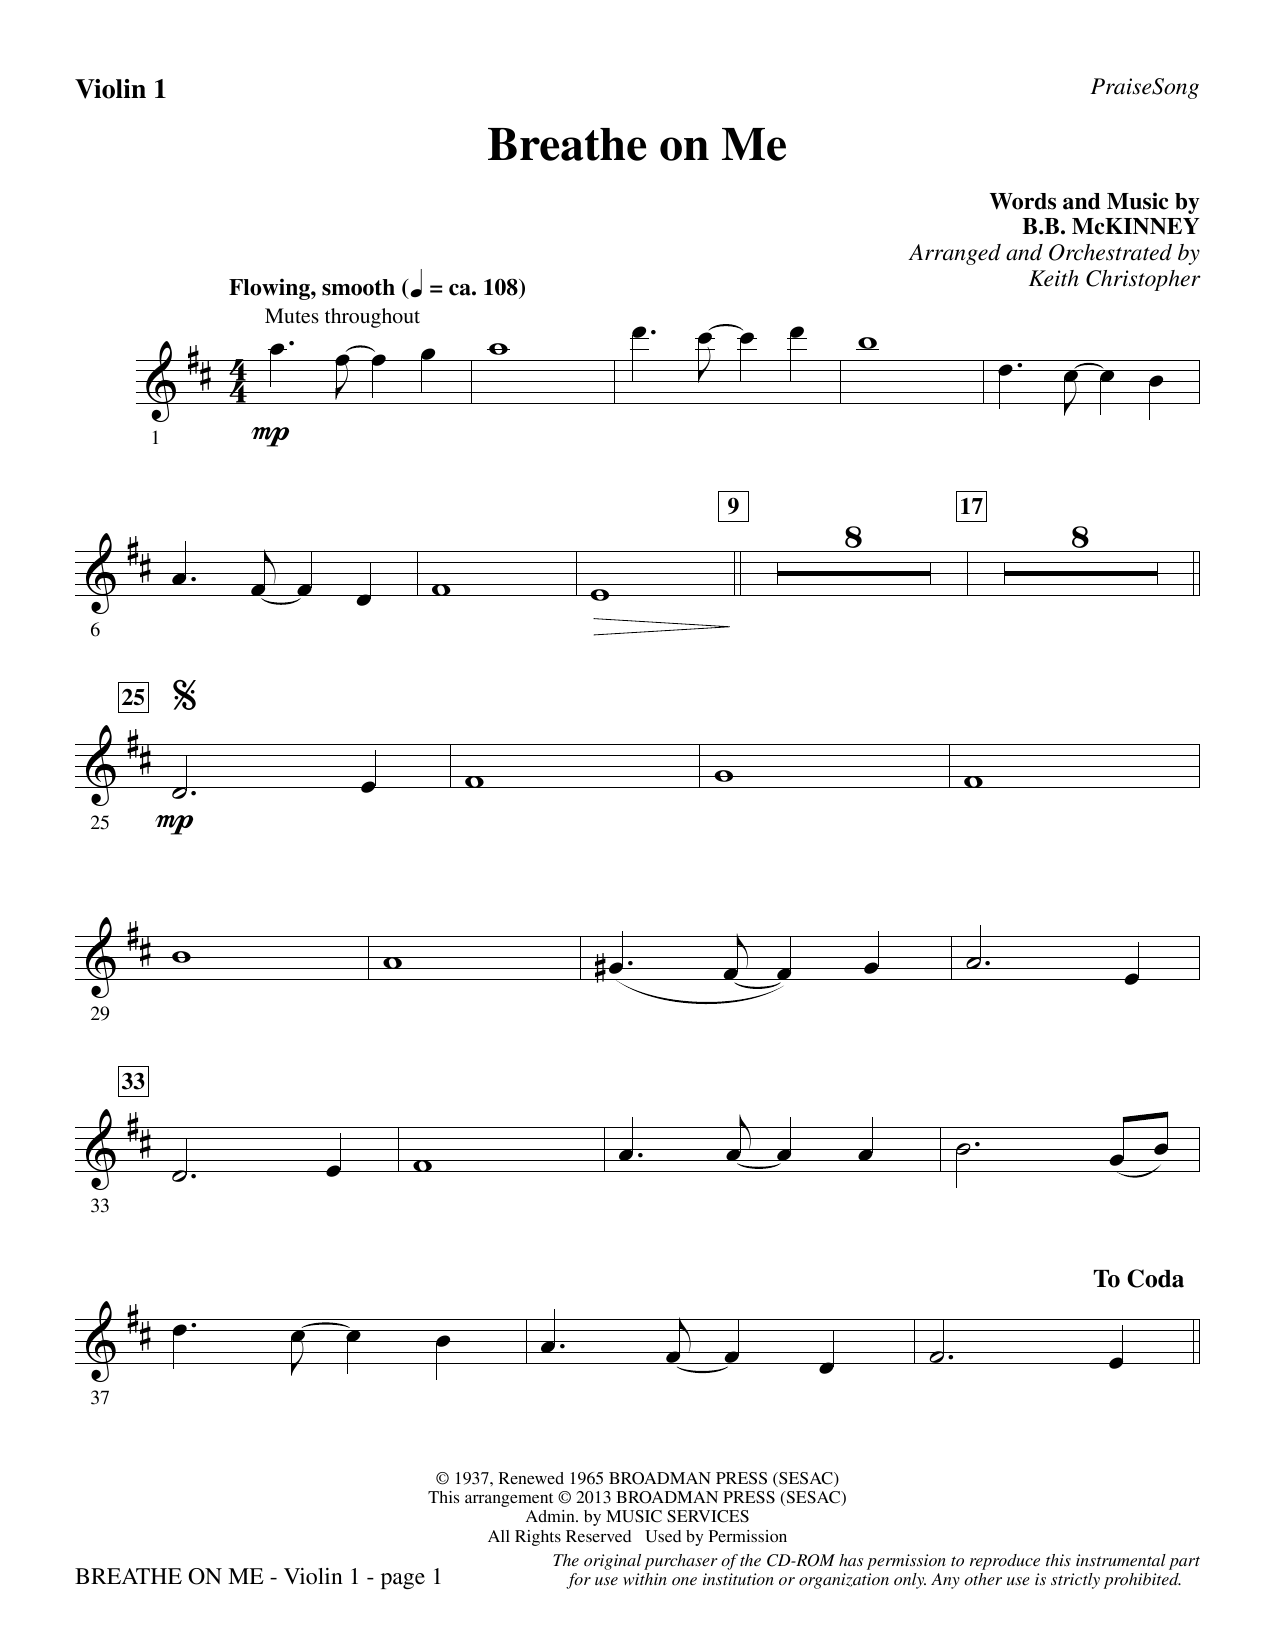 Breathe on Me - Violin 1 Sheet Music